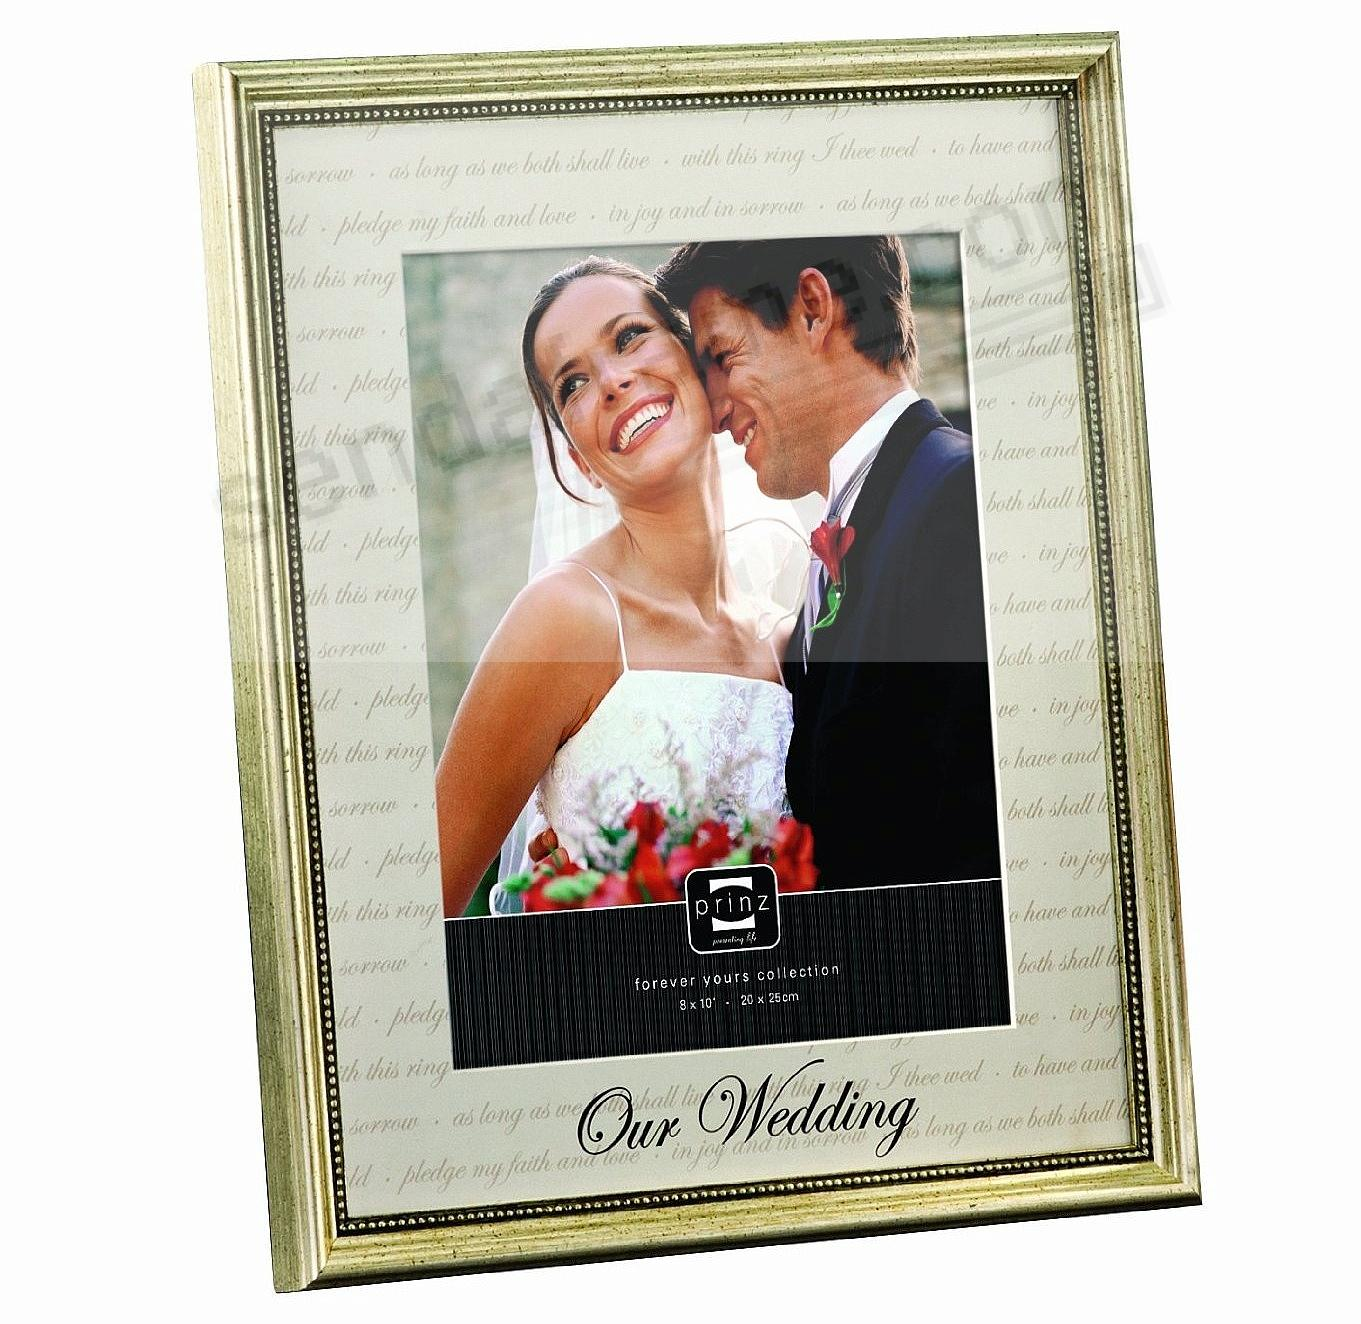 OUR WEDDING matted frame by Prinz®